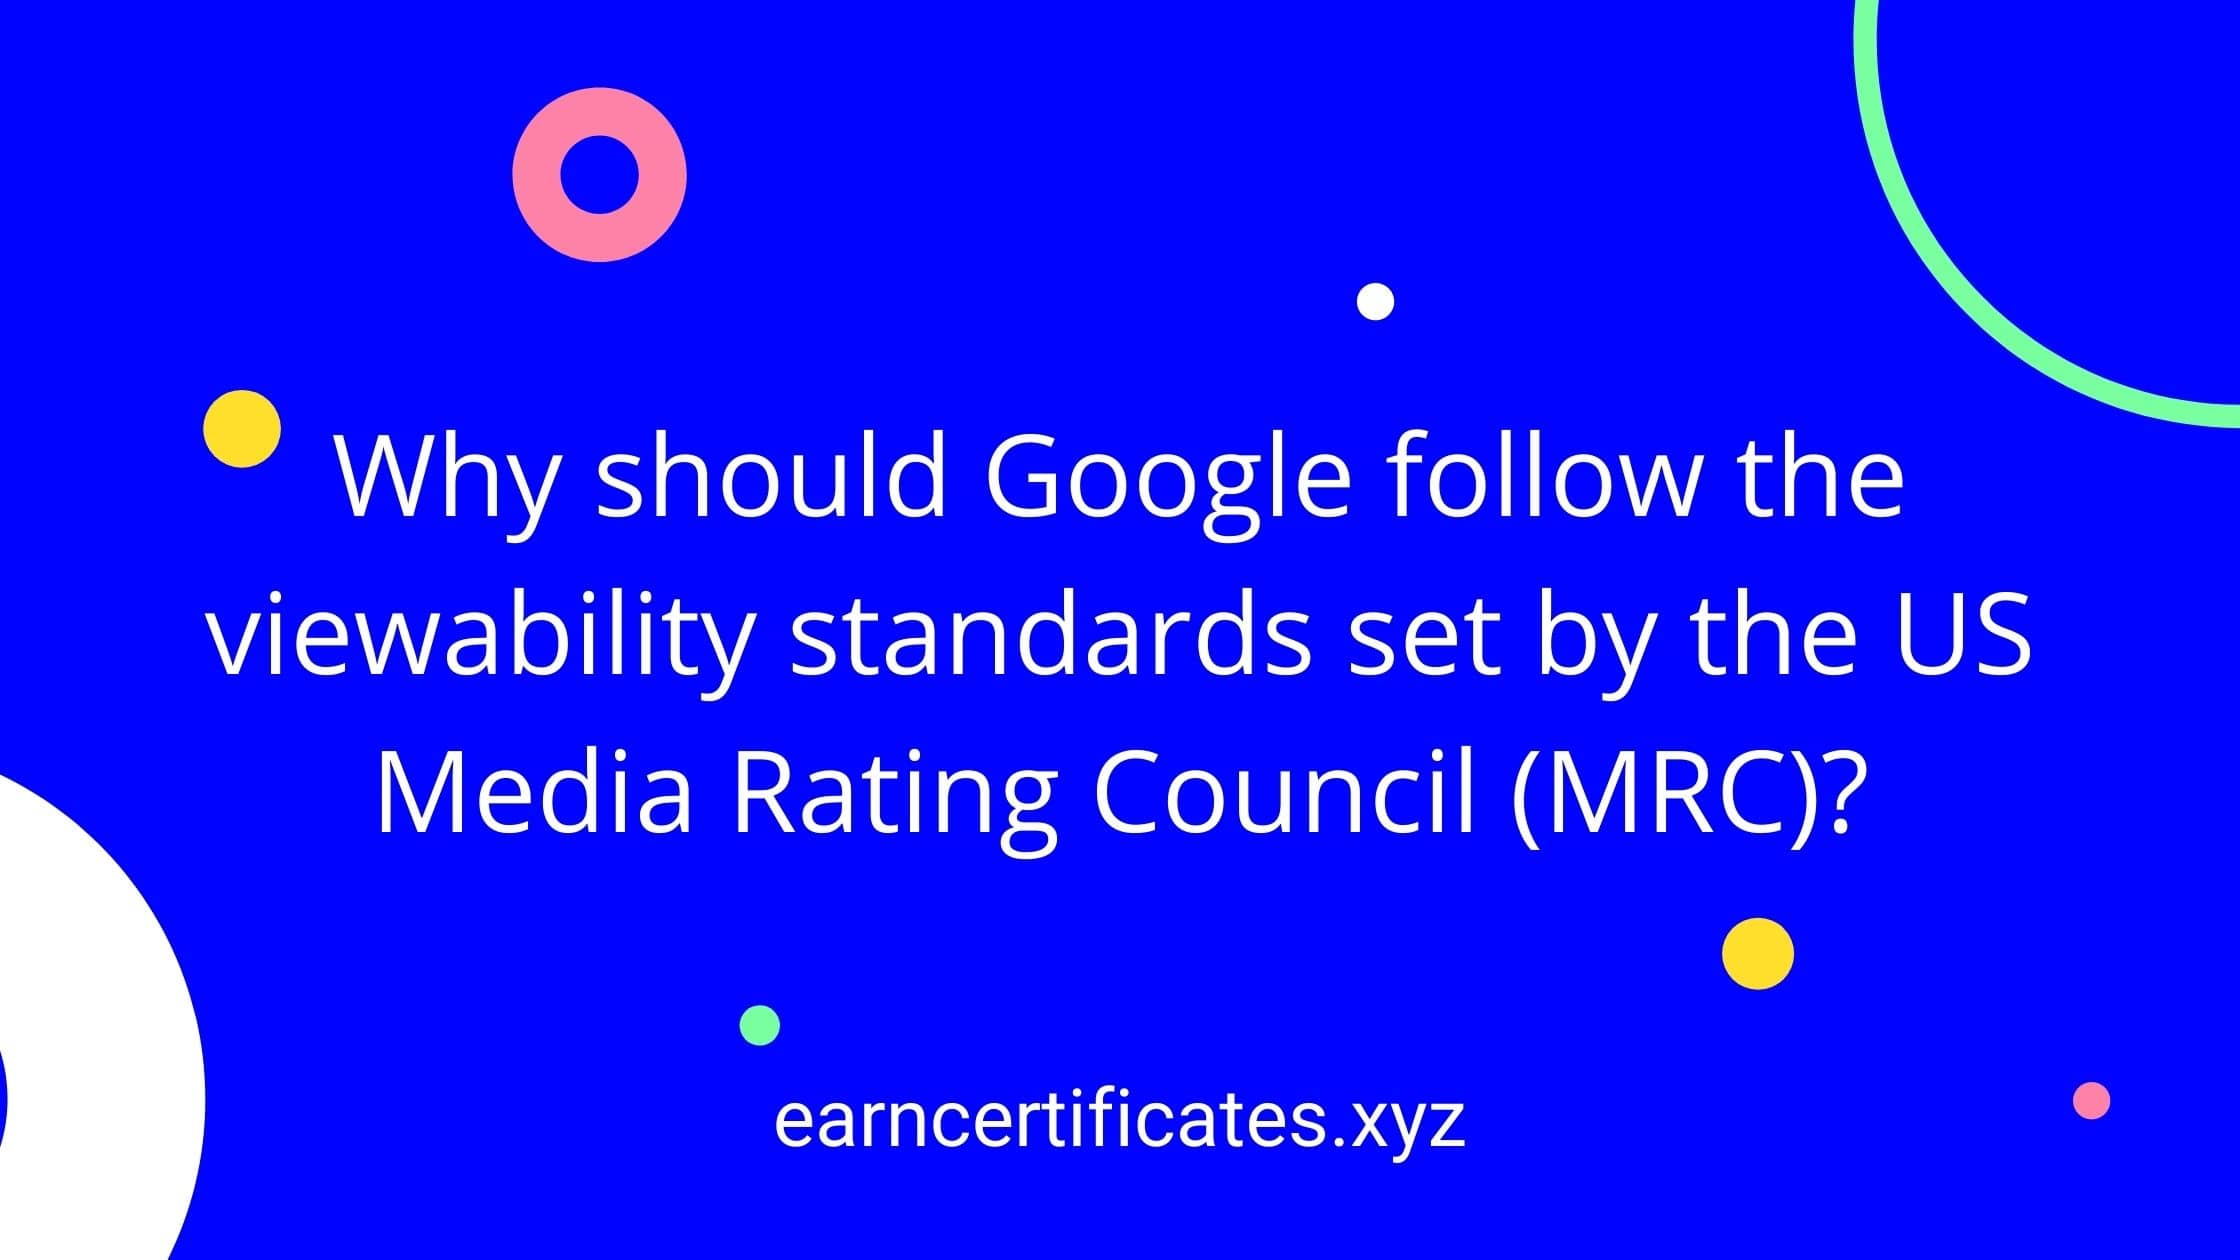 Why should Google follow the viewability standards set by the US Media Rating Council (MRC)?